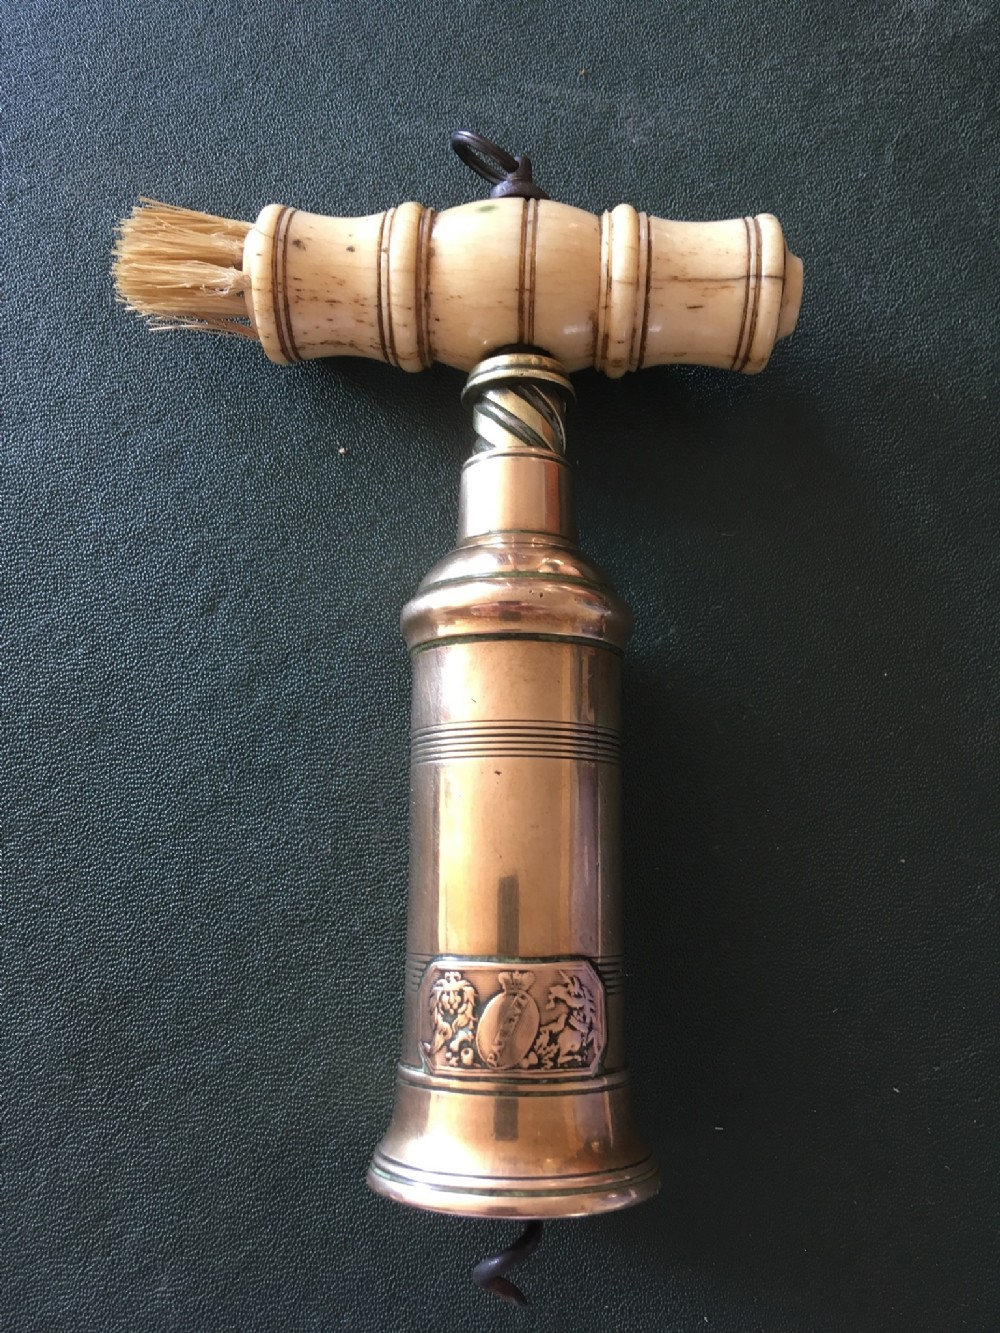 thomason type corkscrew